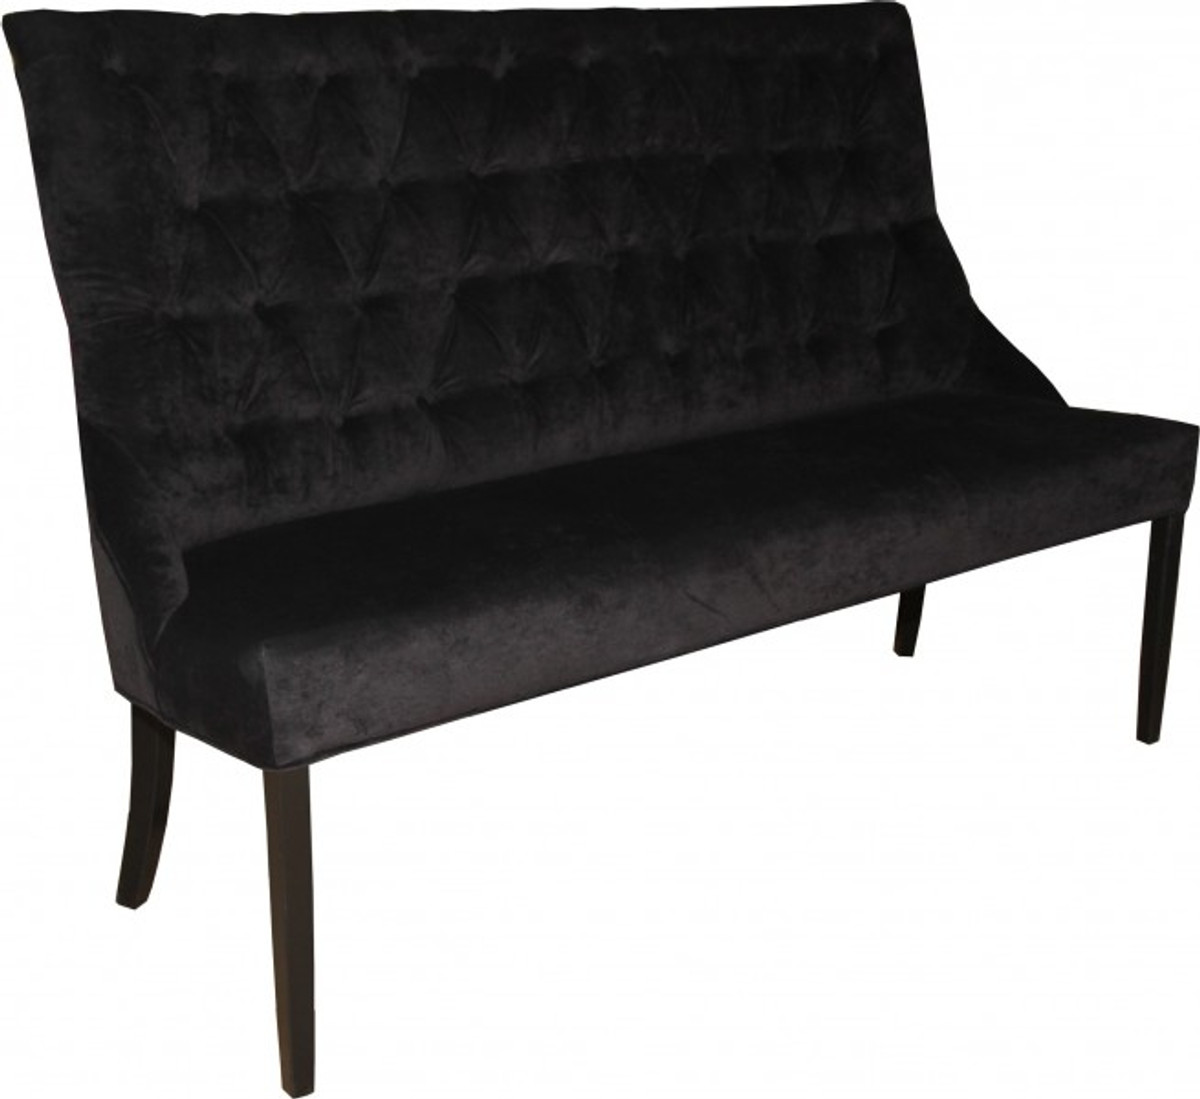 casa padrino chesterfield sitzbank sofa schwarz esszimmer bank b 155 cm h 108 cm t 70 cm. Black Bedroom Furniture Sets. Home Design Ideas